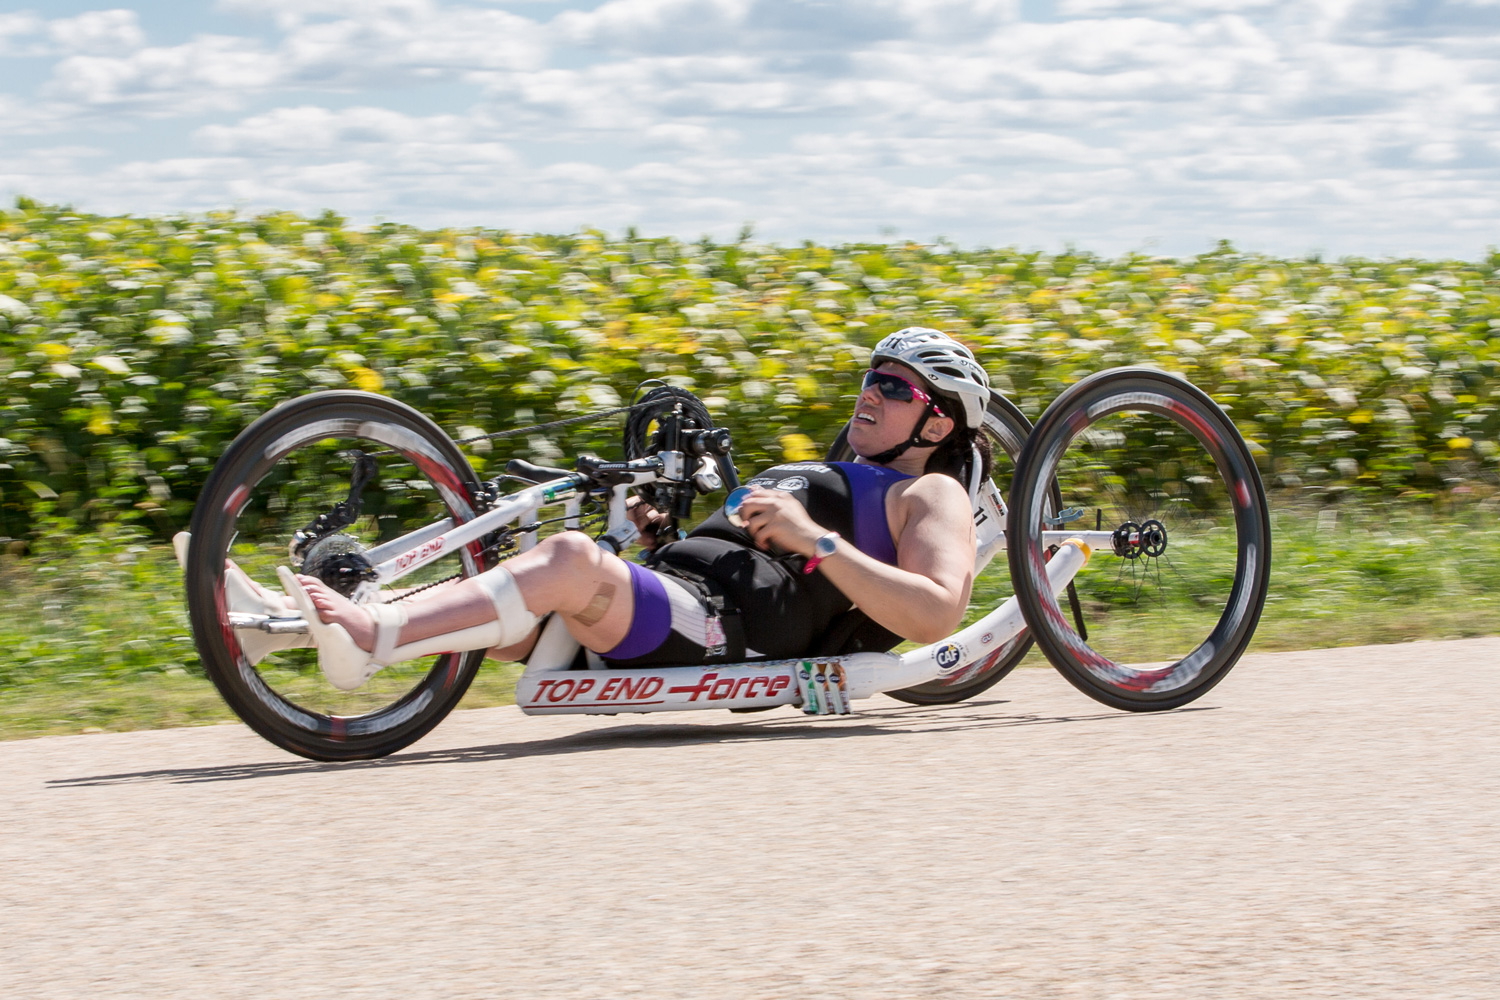 A tough way to bike one of the hilliest Ironman bike portions in the country.